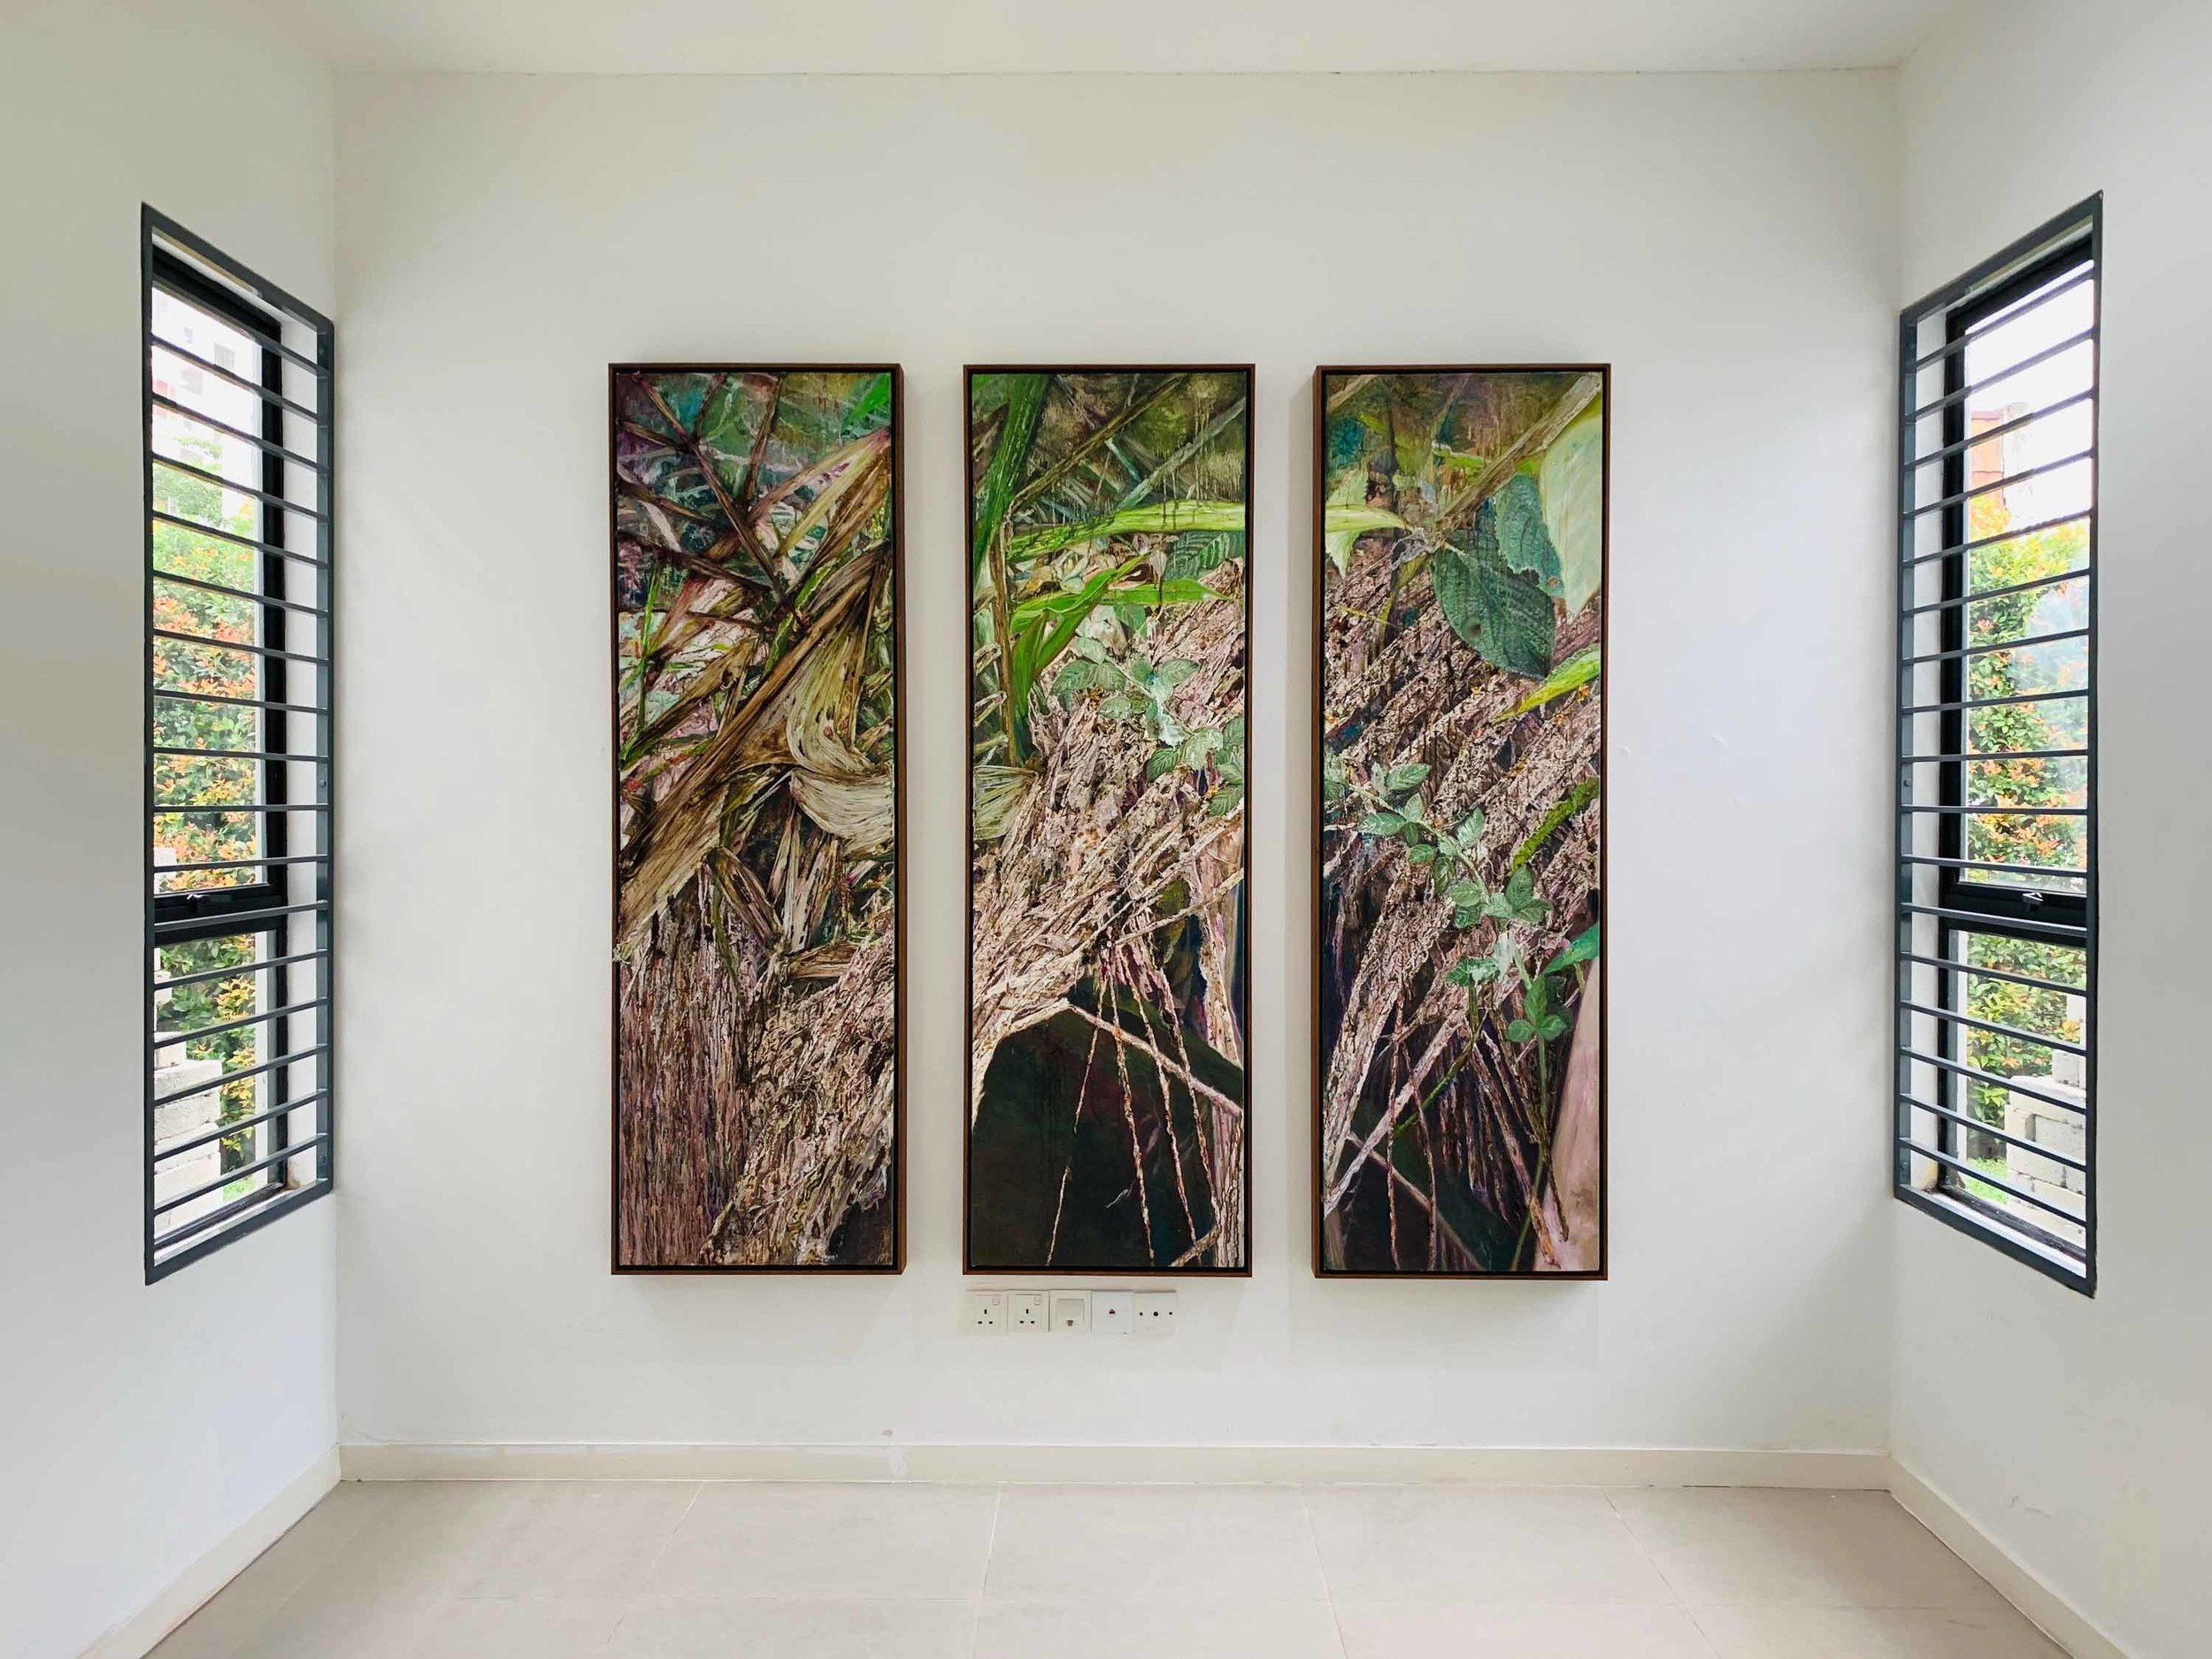 Tiong Chai Heing, 'Impermanence I', 2019, oil paint, fabric and epoxy on canvas, 3 panels, 180x 55cm each. Image courtesy of the artist and Suma Orientalis.